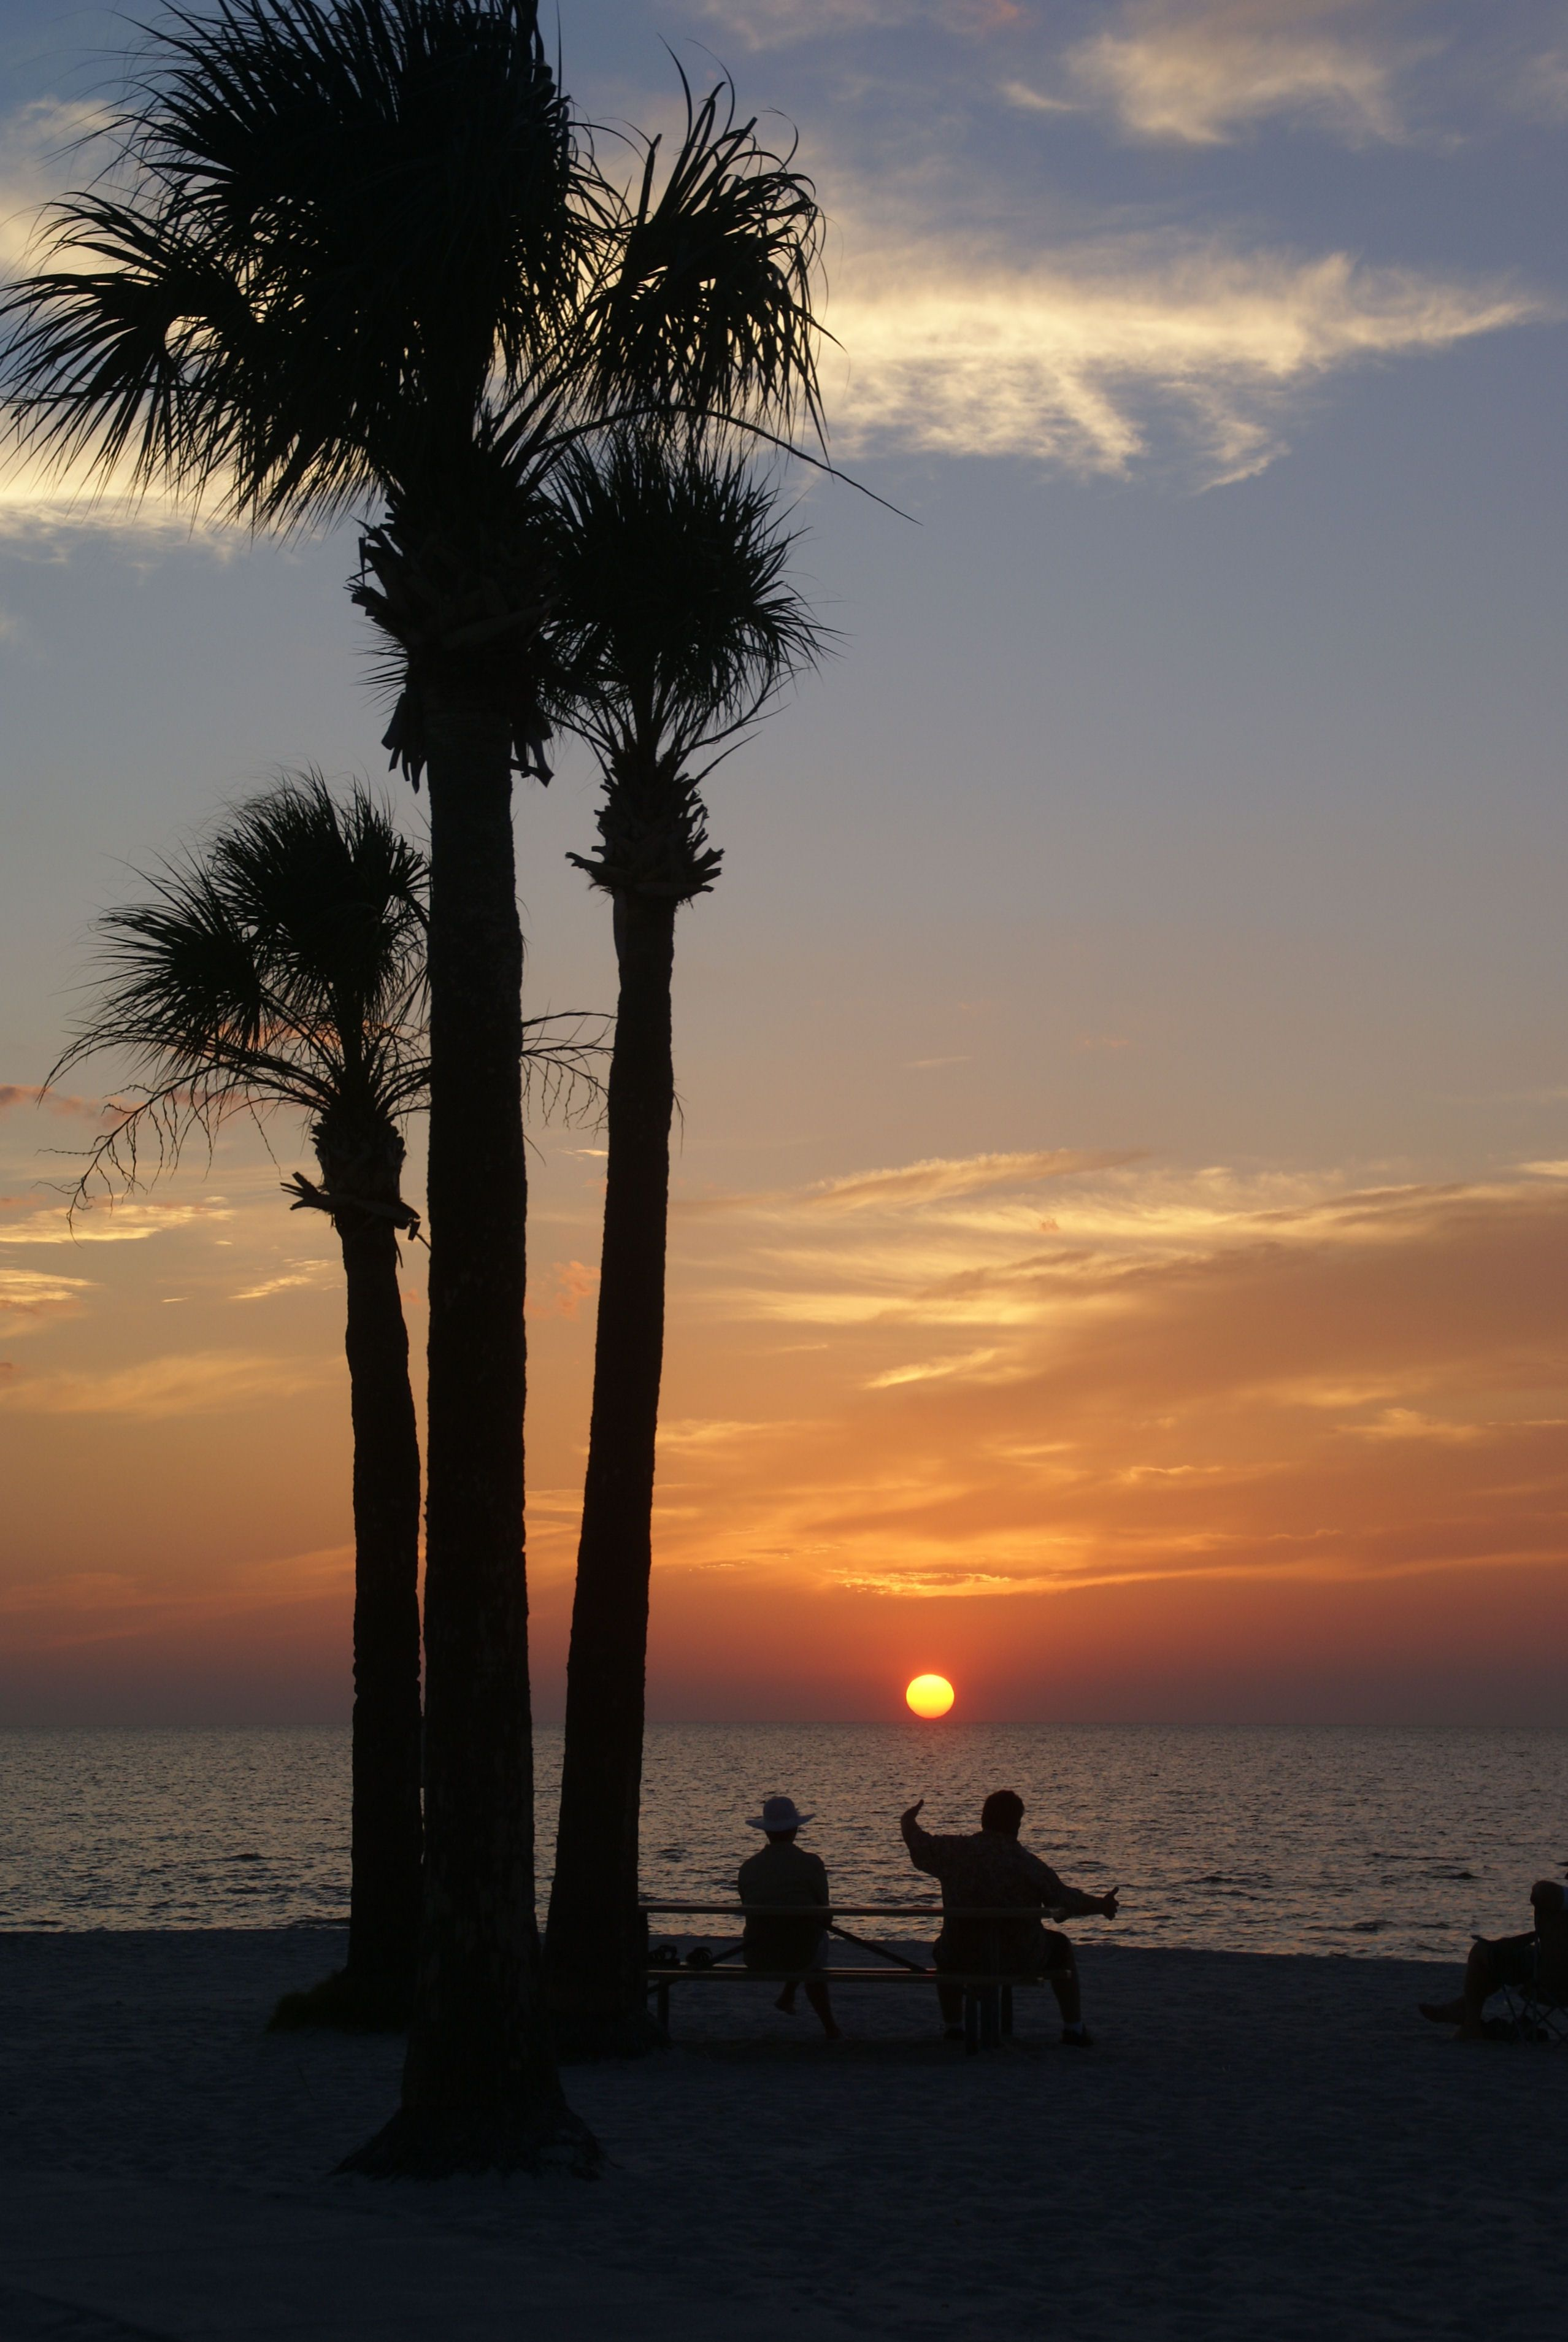 Pine Island Hernando County Fl Is A Great Place To Catch Florida Sunset Pinkladyofrealestate